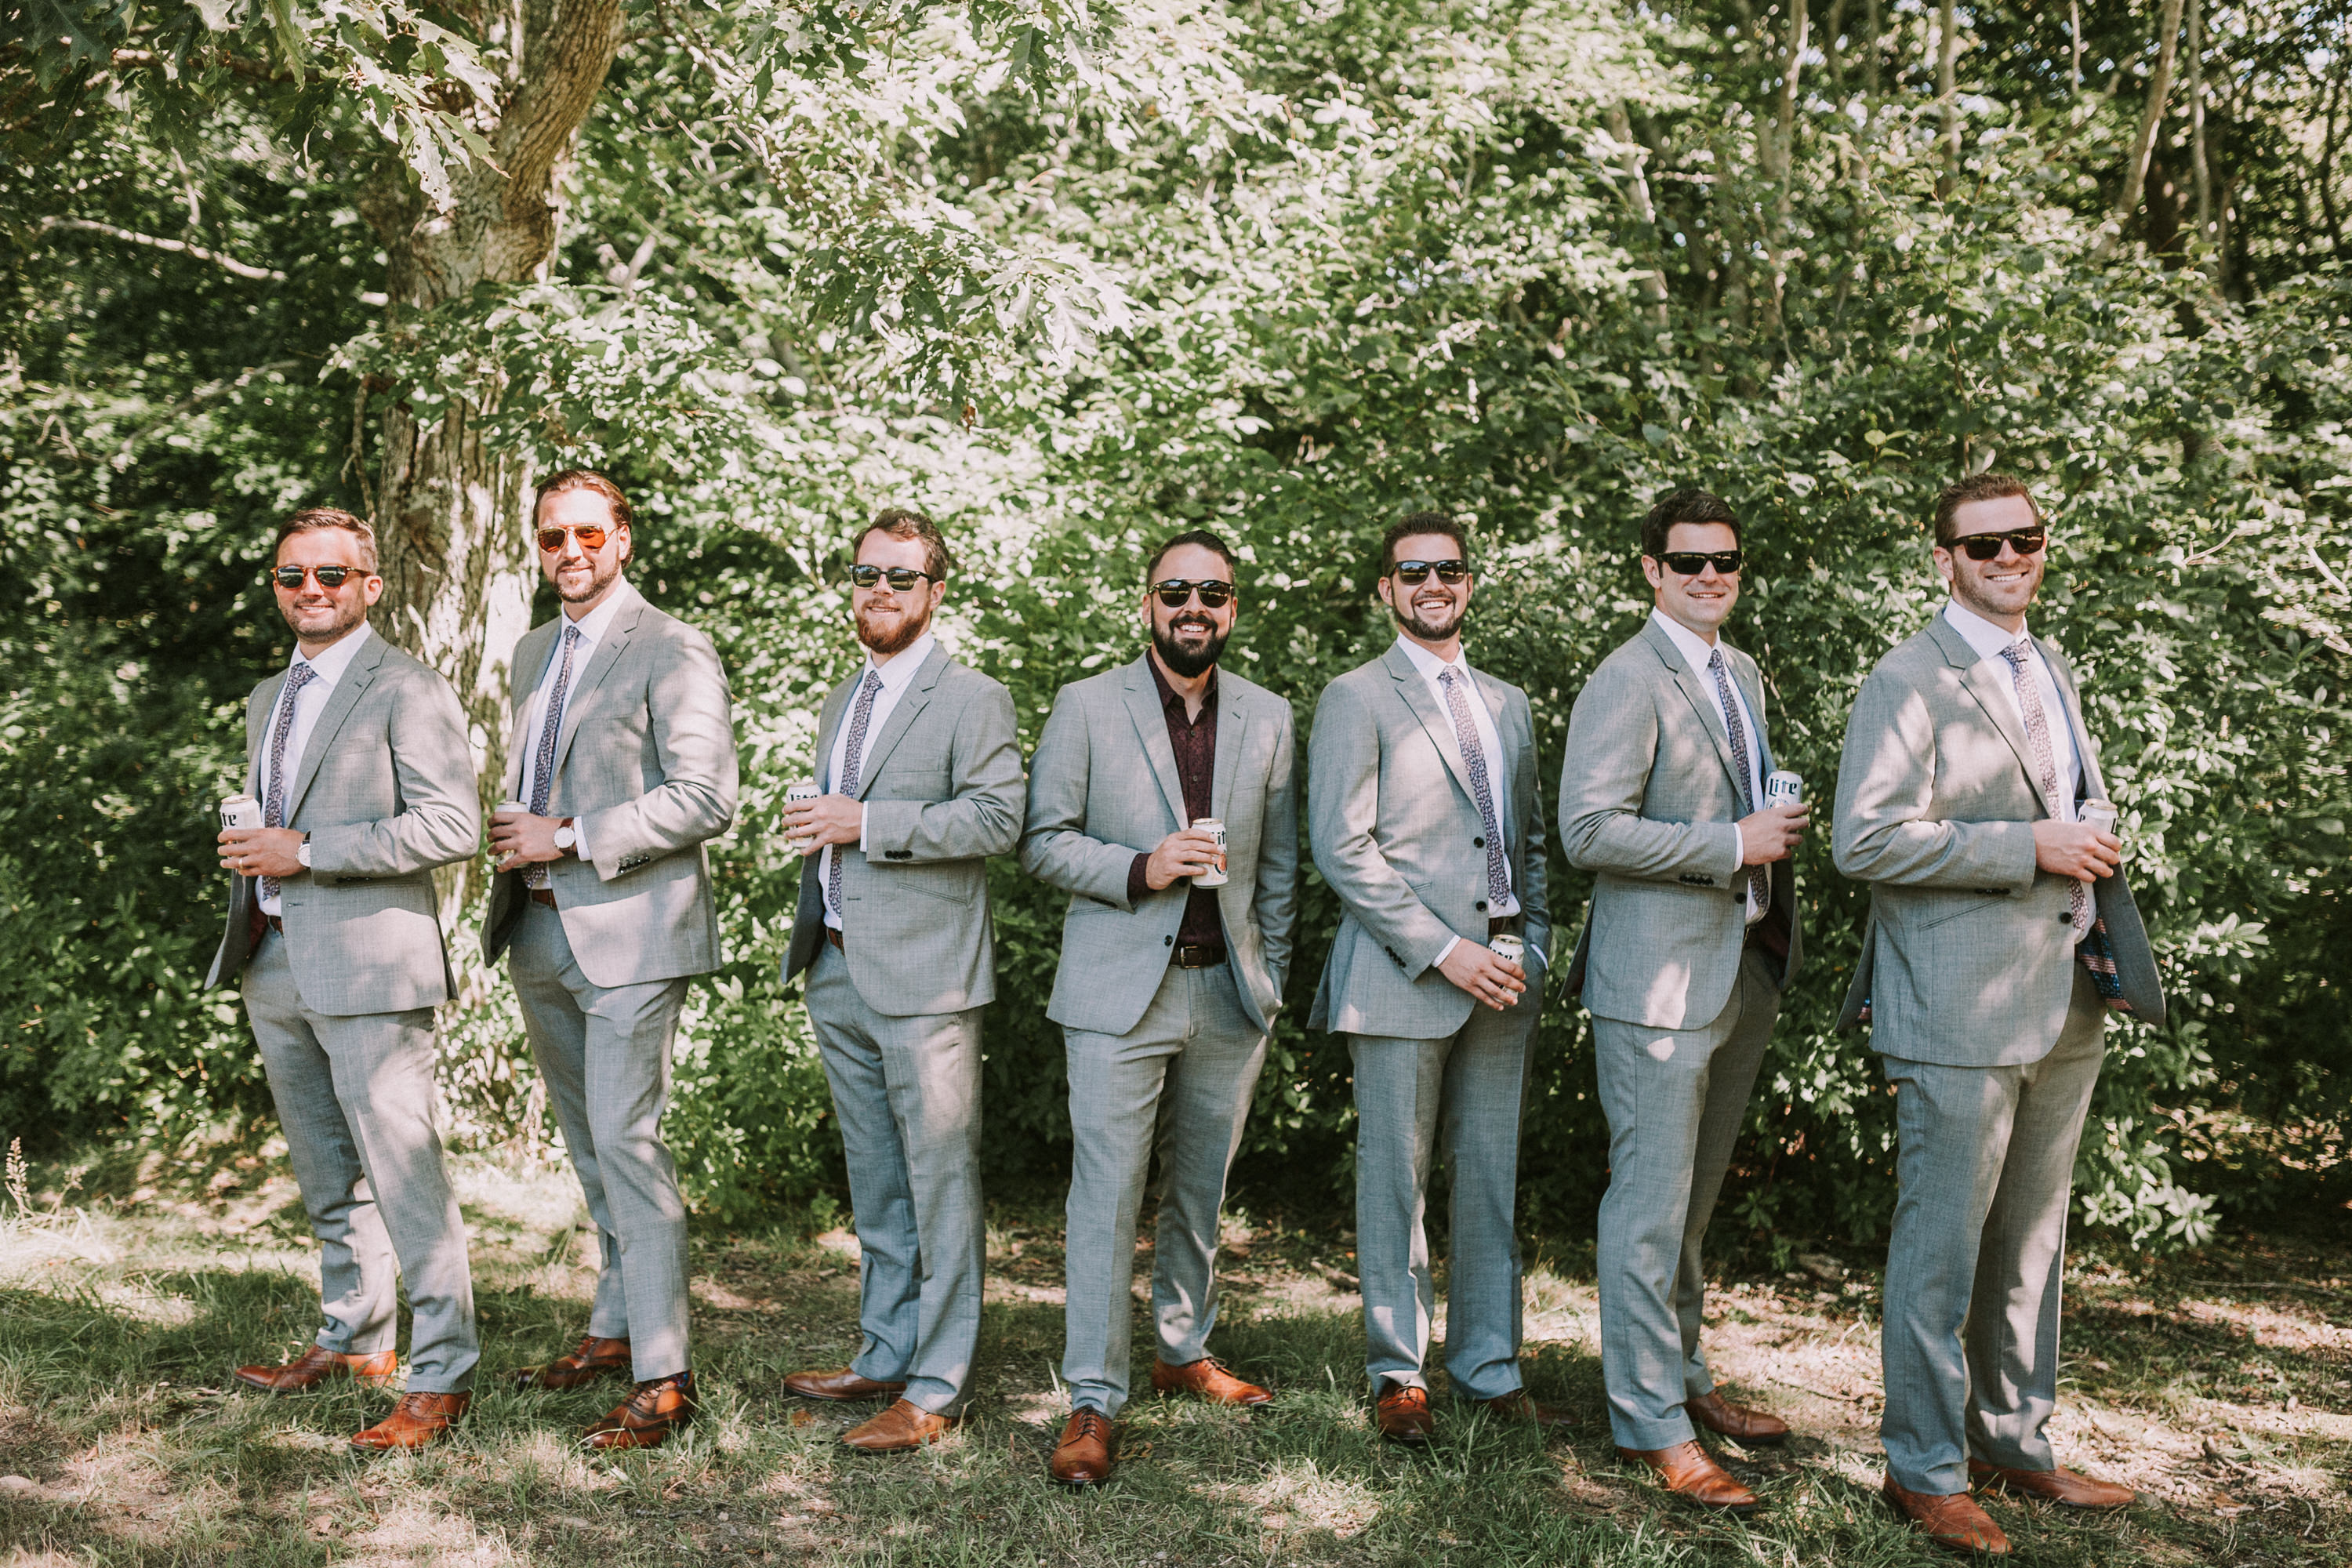 groomsmen, beer, sunglasses, bro, groomsmen with beer hanging out, groom with bros and beers